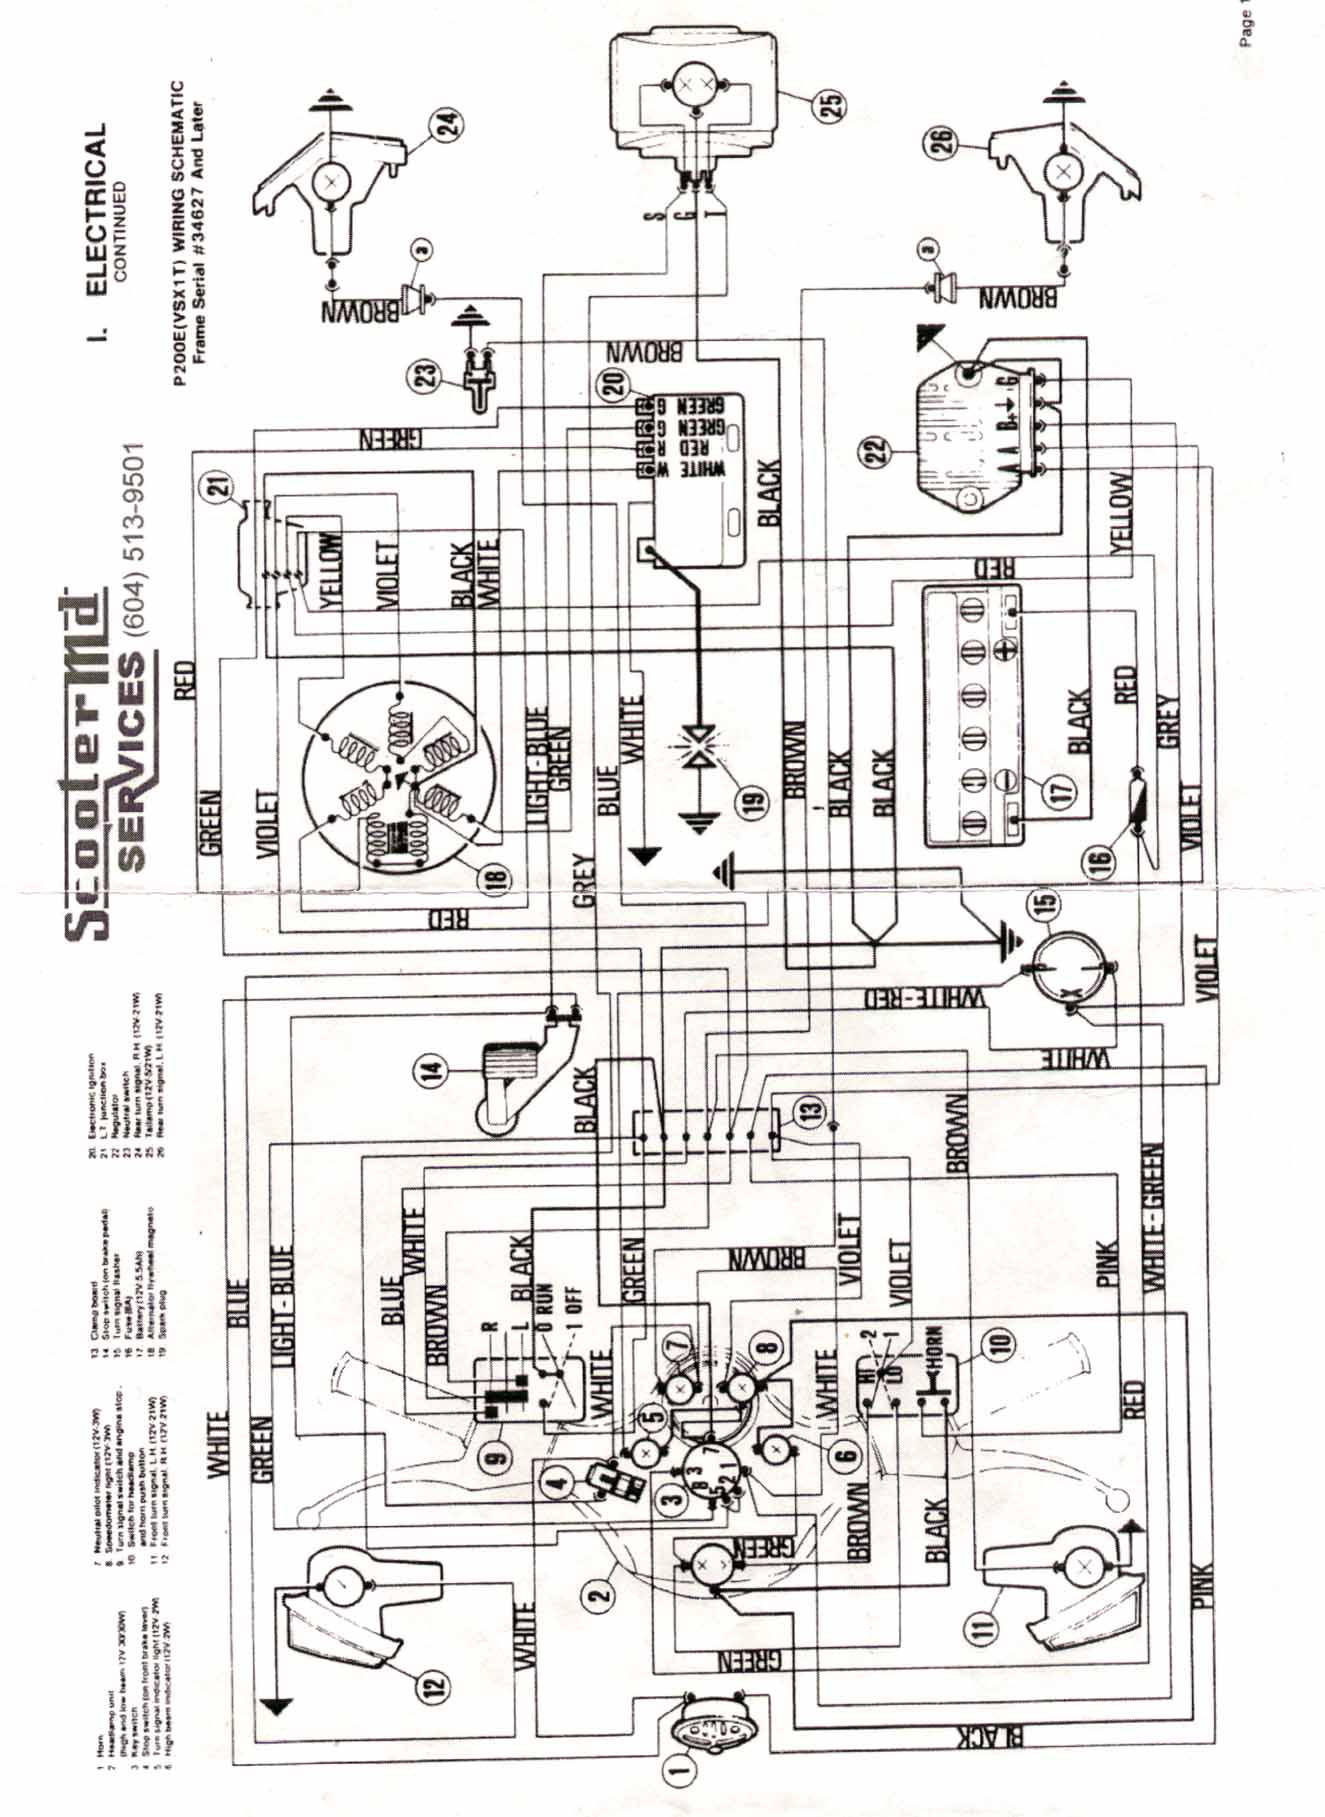 vespa p series maintenance repair rh vespamaintenance com Wiring Harness Wiring-Diagram Vespatronic Wiring-Diagram